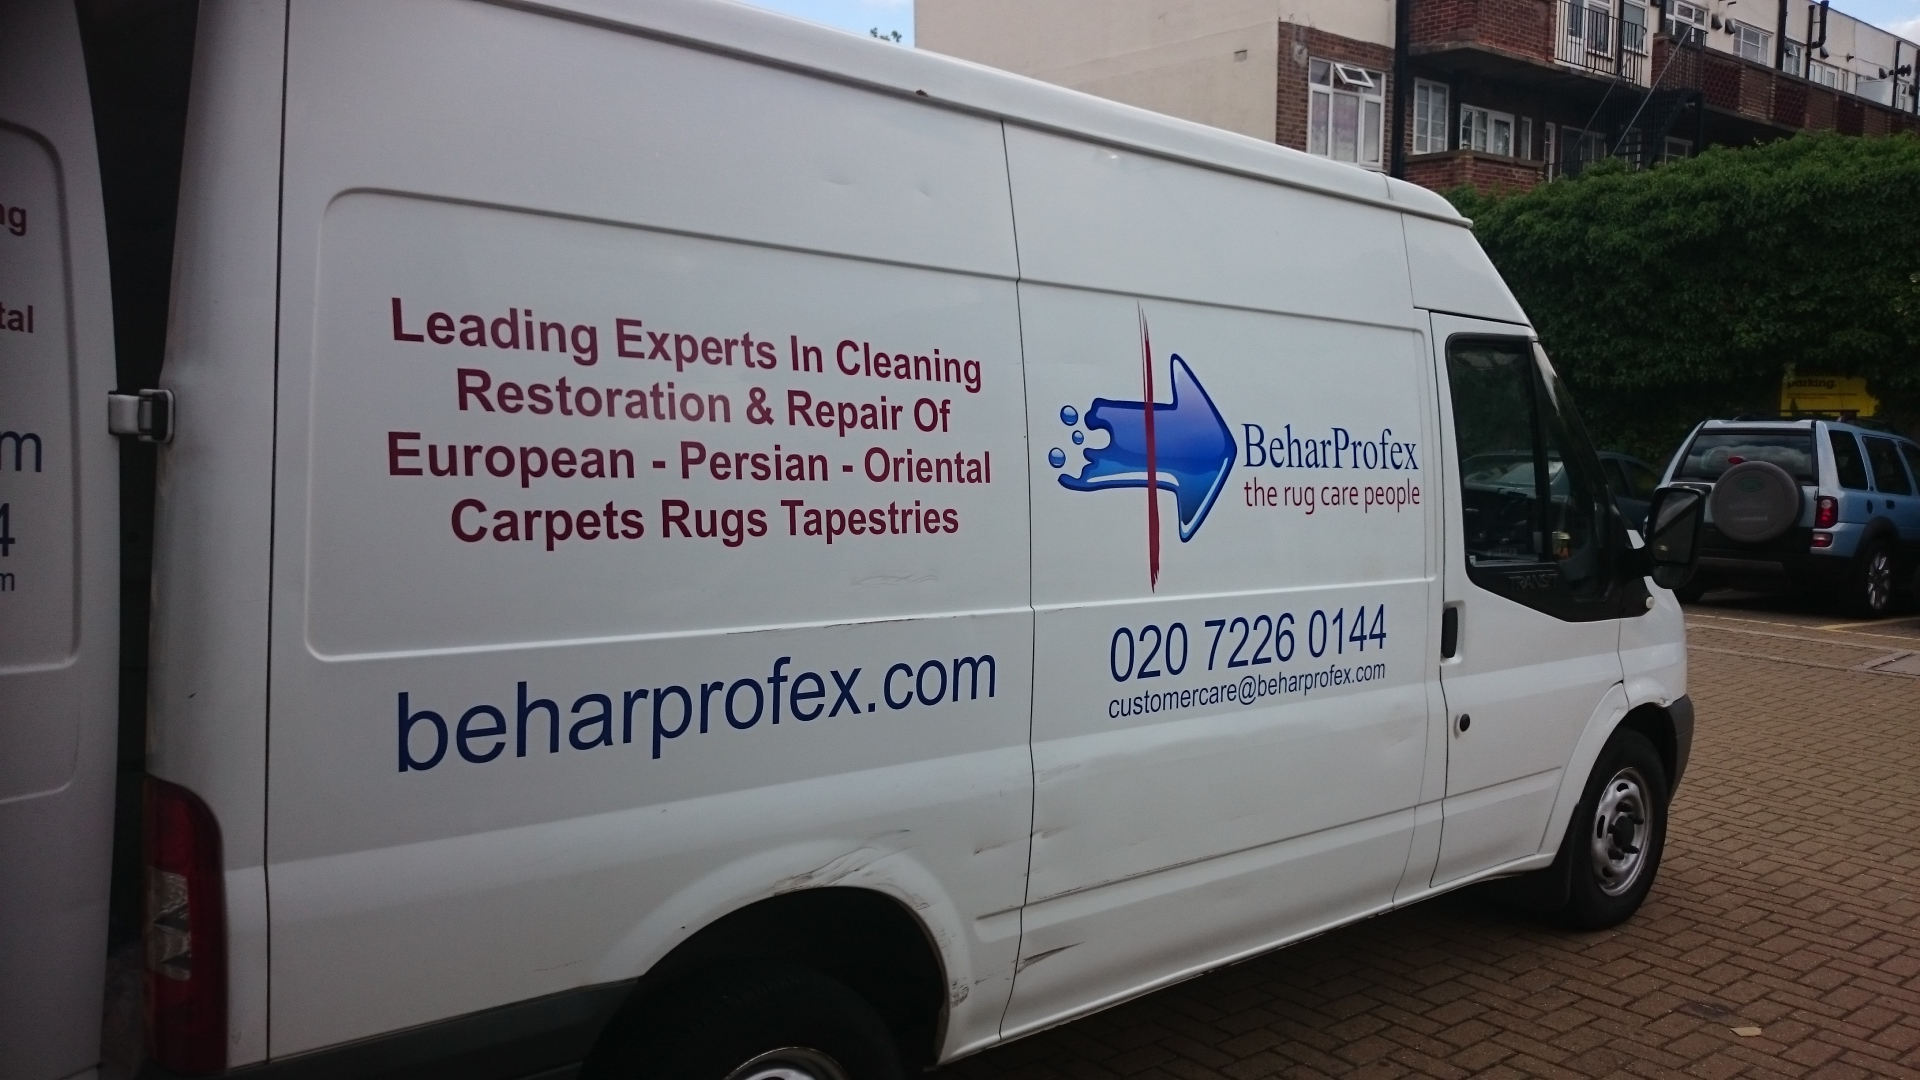 Our van on its way to collect your rug